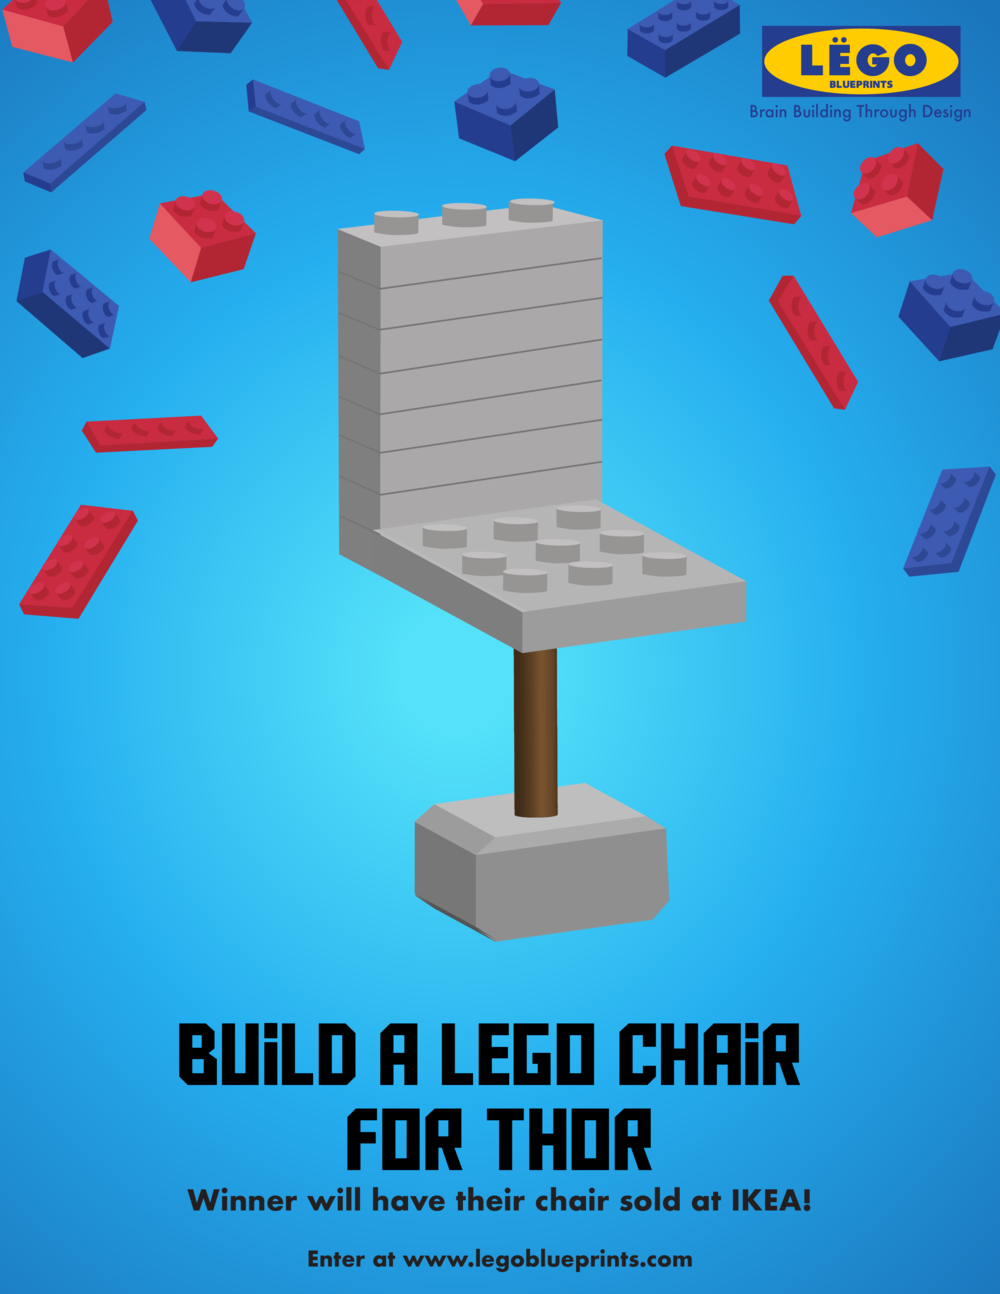 lego blueprints competition posters-02.png